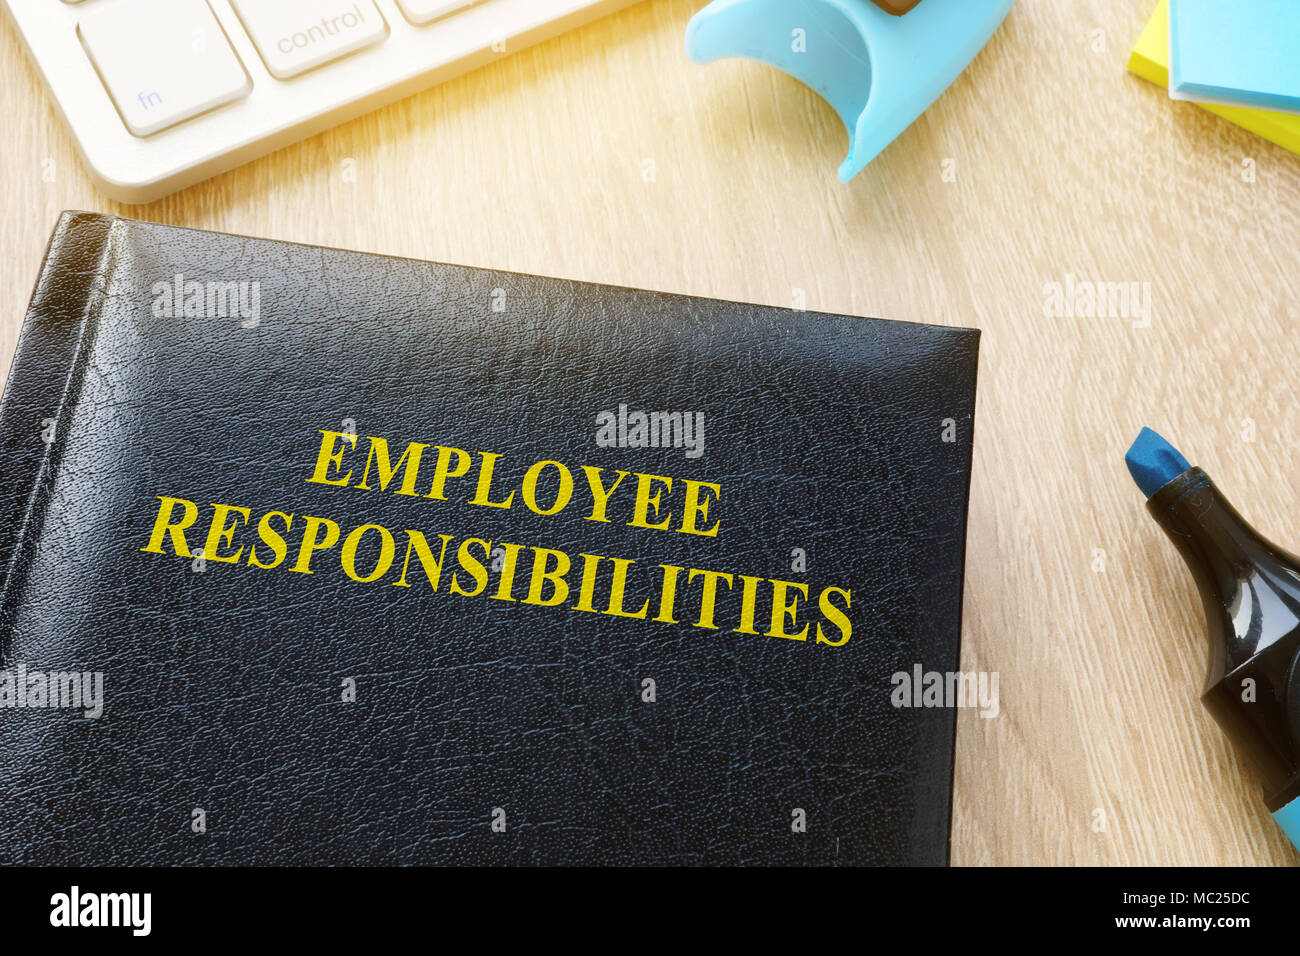 Book about Employee responsibilities on an office table. - Stock Image